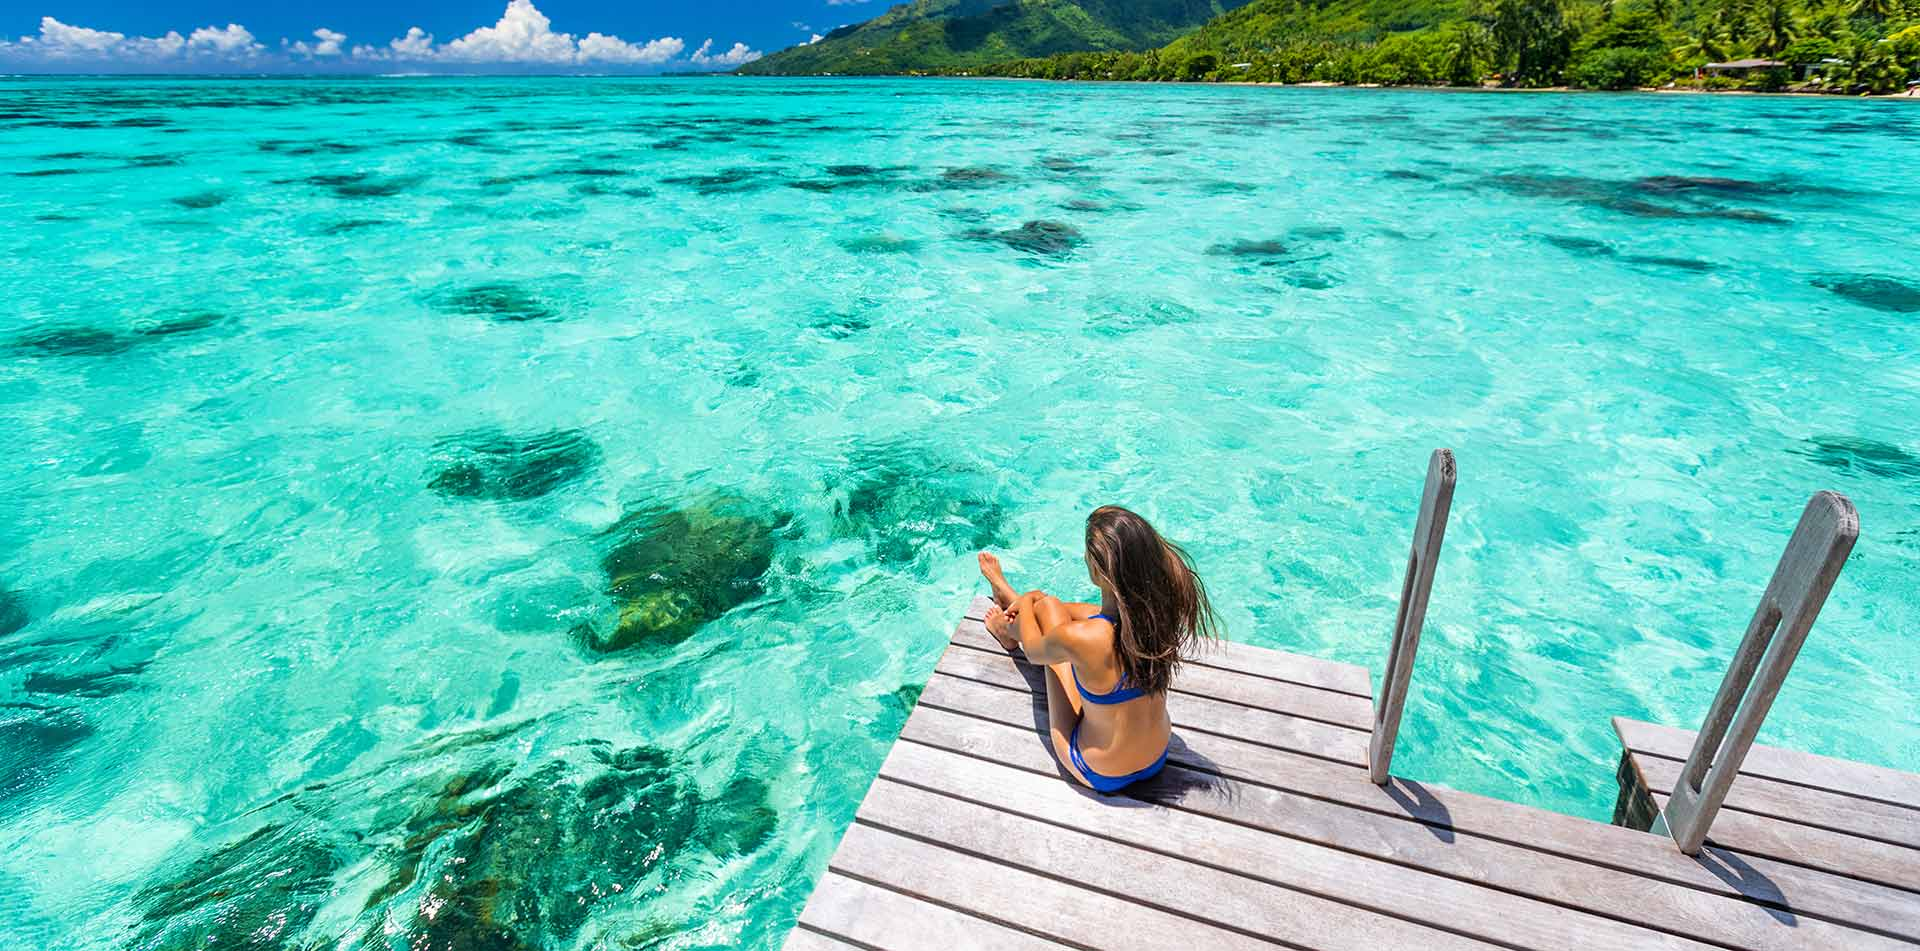 South Pacific Tahiti Bora Bora woman relaxing clear water lush landscape - luxury vacation destinations